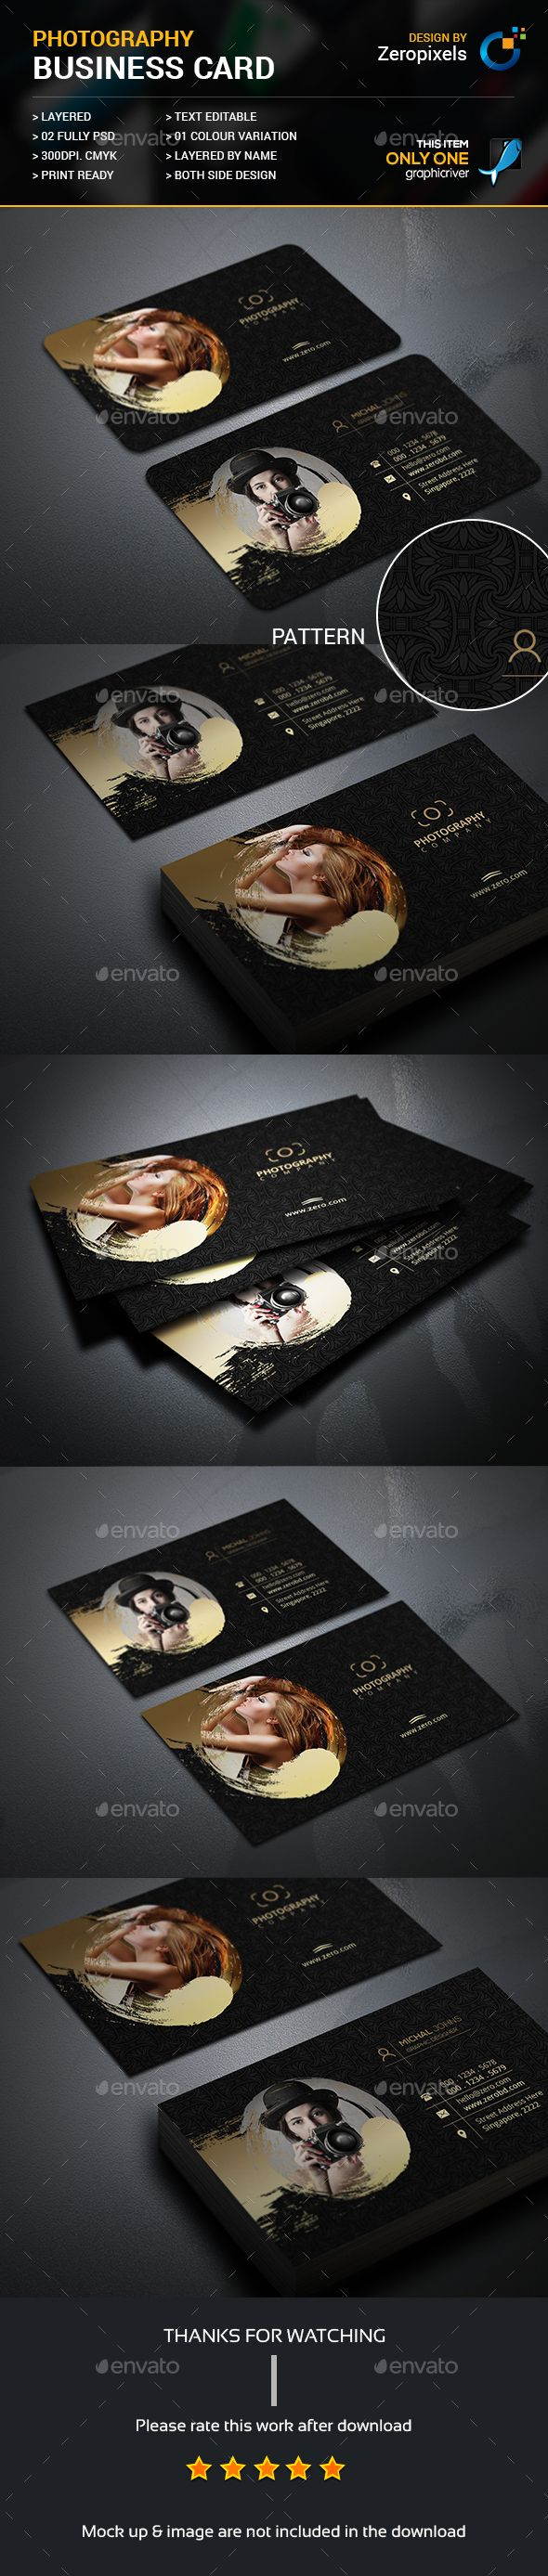 Creative Photography Business Card Template PSD. Download here: https://graphicriver.net/item/creative-photography-business-card/17494508?ref=ksioks